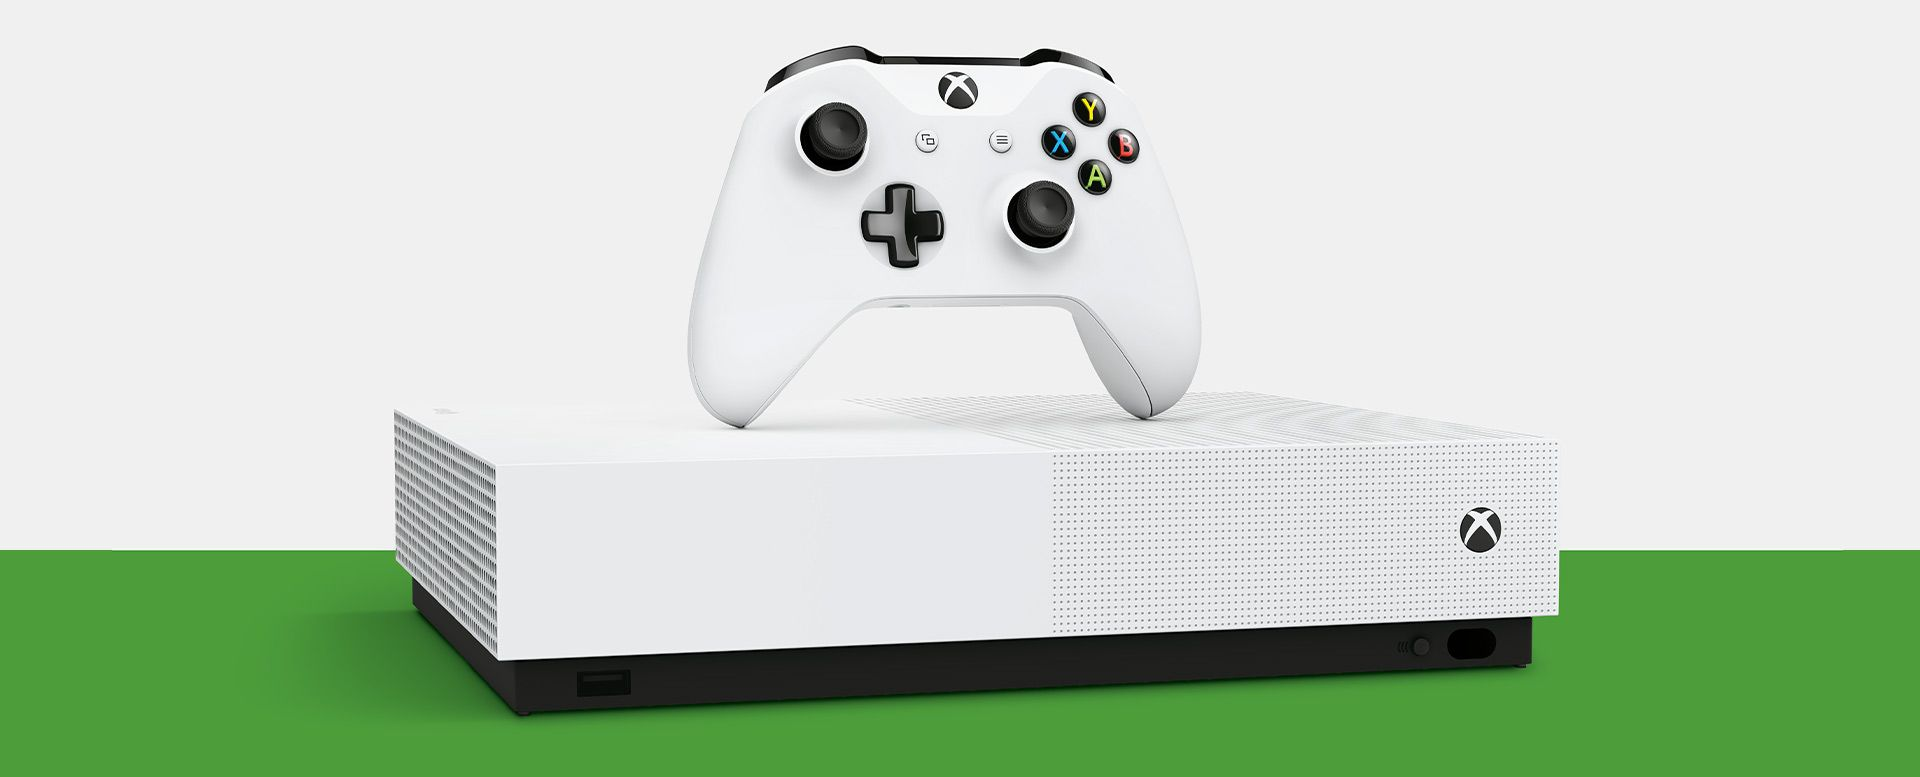 Console Xbox One S - 1 Terabyte + HDR + 4K Streaming All Digital (2 Controles)